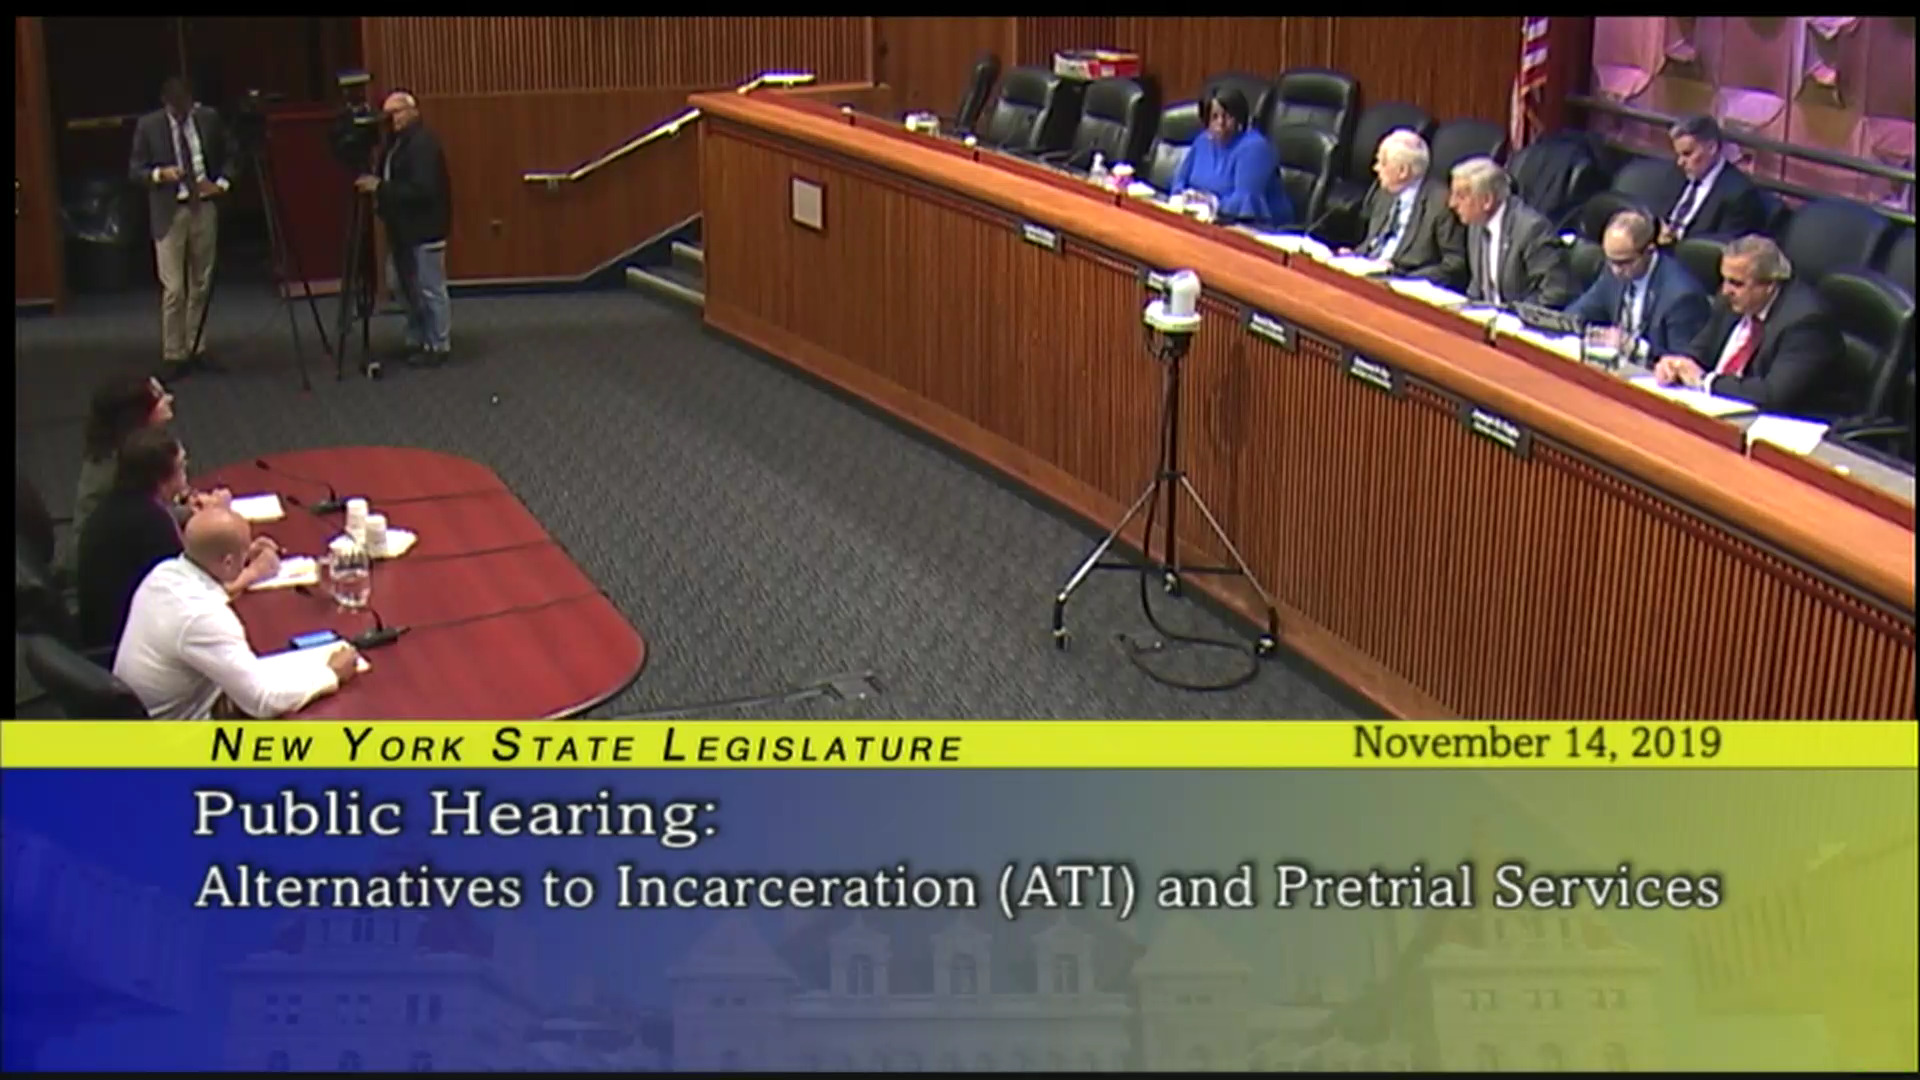 Public Hearing on Alternatives to Incarceration (ATI) and Pretrial Services (2)